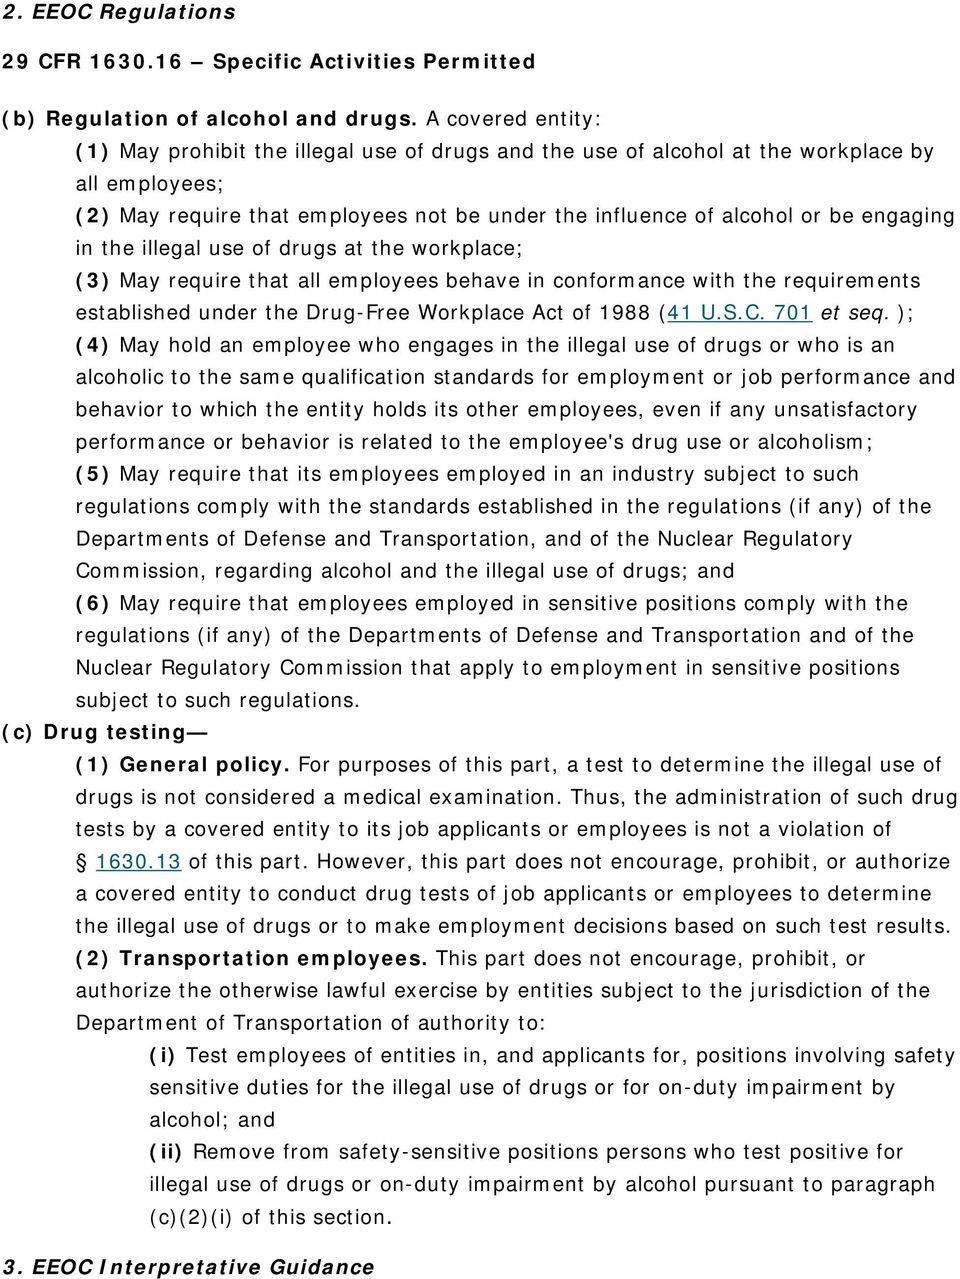 engaging in the illegal use of drugs at the workplace; (3) May require that all employees behave in conformance with the requirements established under the Drug-Free Workplace Act of 1988 (41 U.S.C.